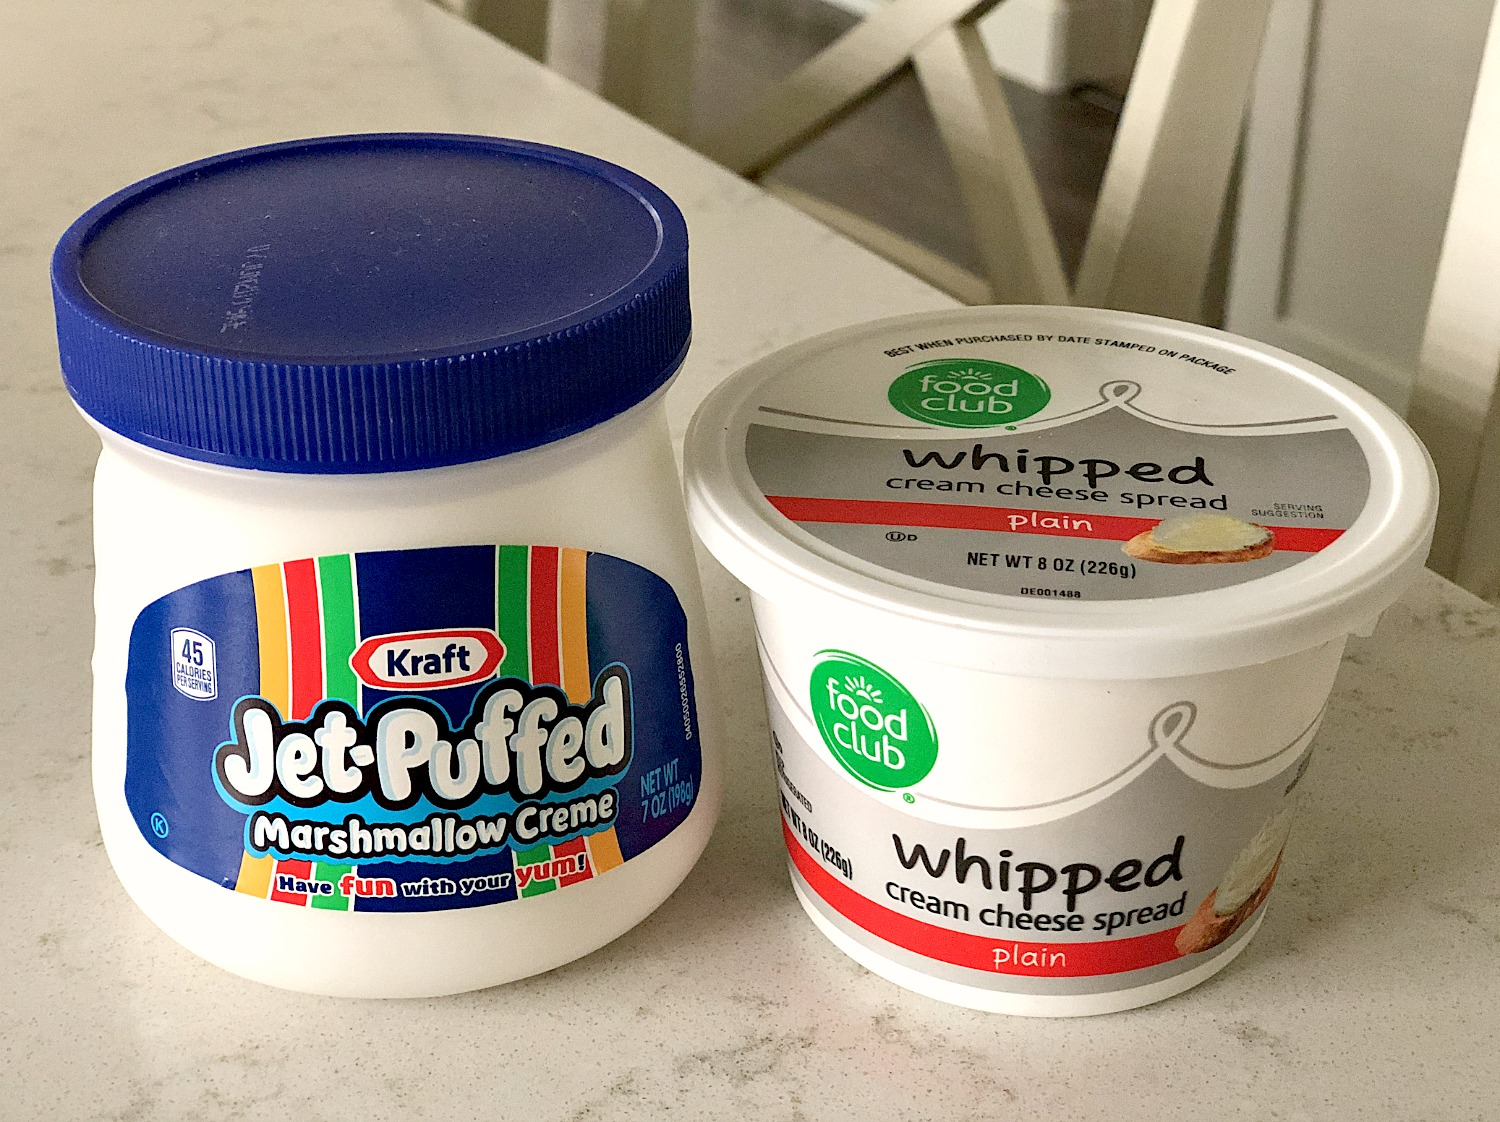 Containers for Marshmallow Creme and Whipped cream cheese